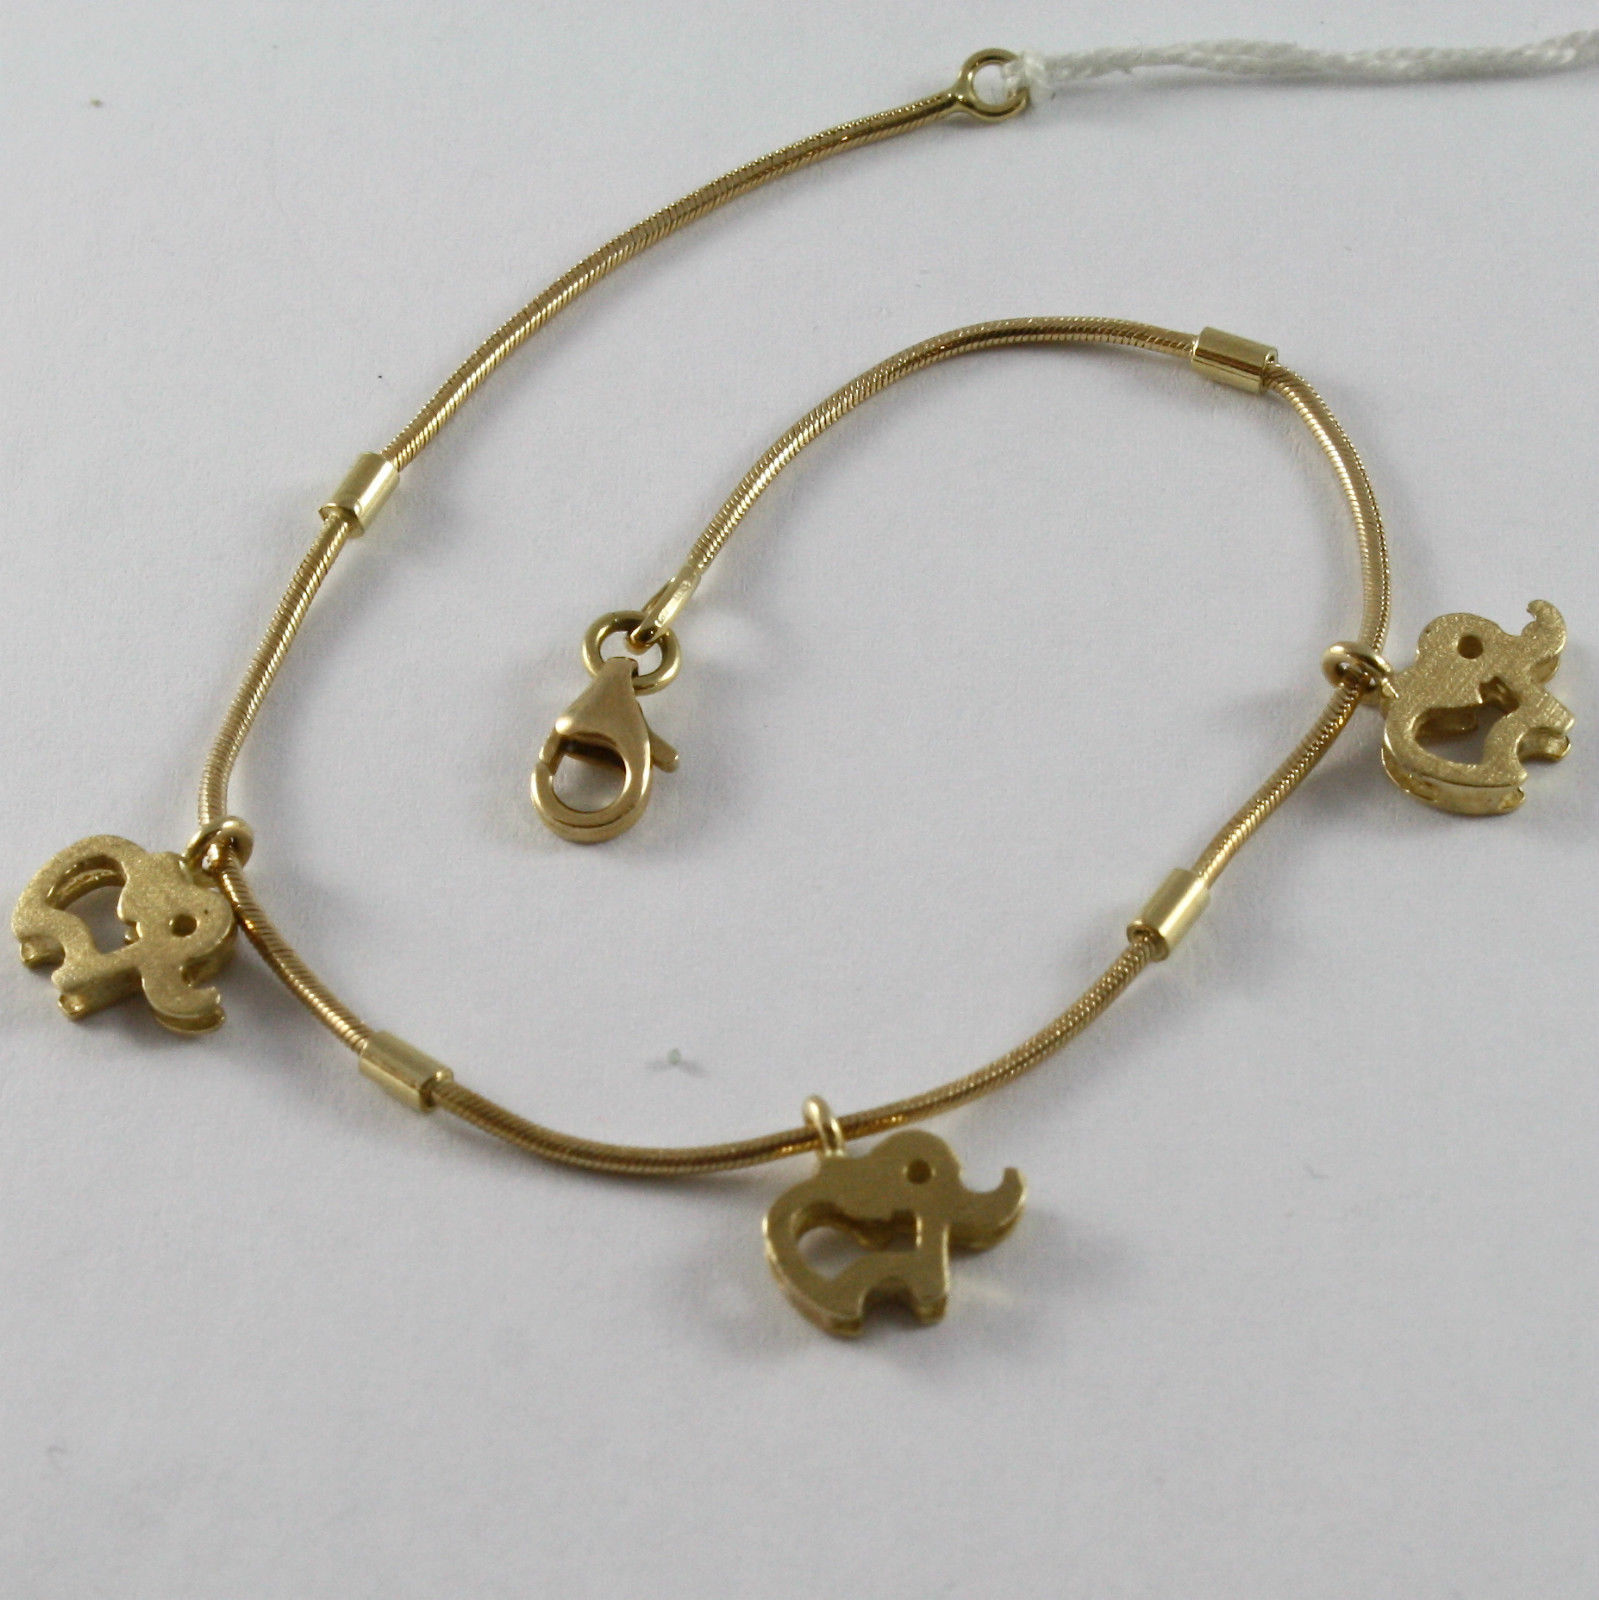 SOLID 18K YELLOW GOLD BRACELET WITH ELEPHANT PENDANT, ELEPHANTS, MADE IN ITALY